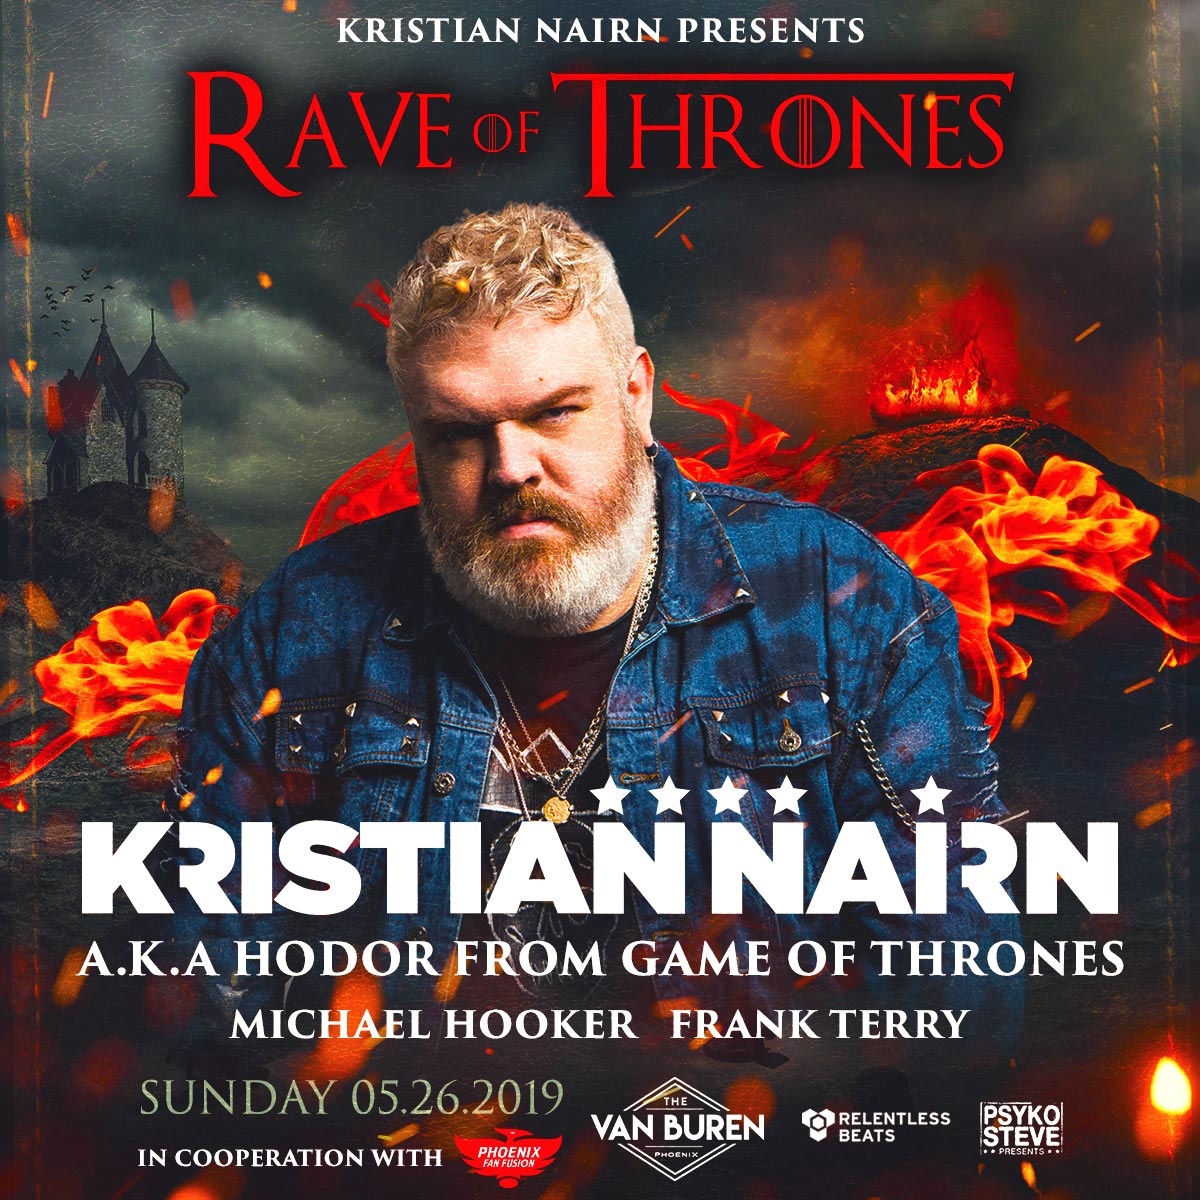 Flyer for Kristian Nairn presents Rave of Thrones